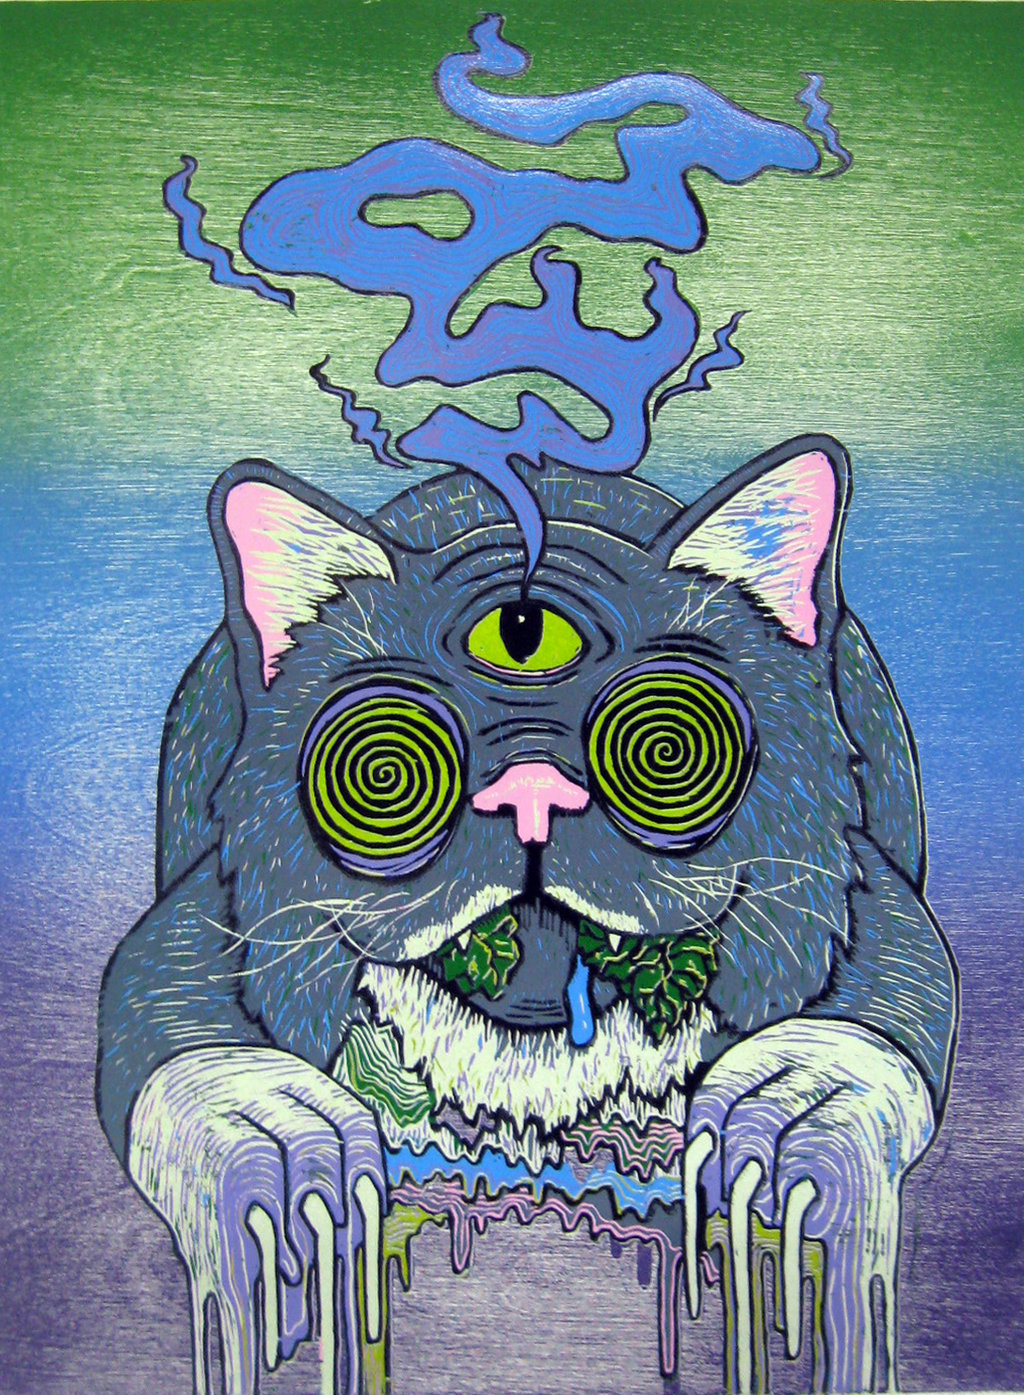 Supreme Girl Wallpaper Iphone Cat Katze Trippy Psychedelic Creepy Monster Kitty Augen